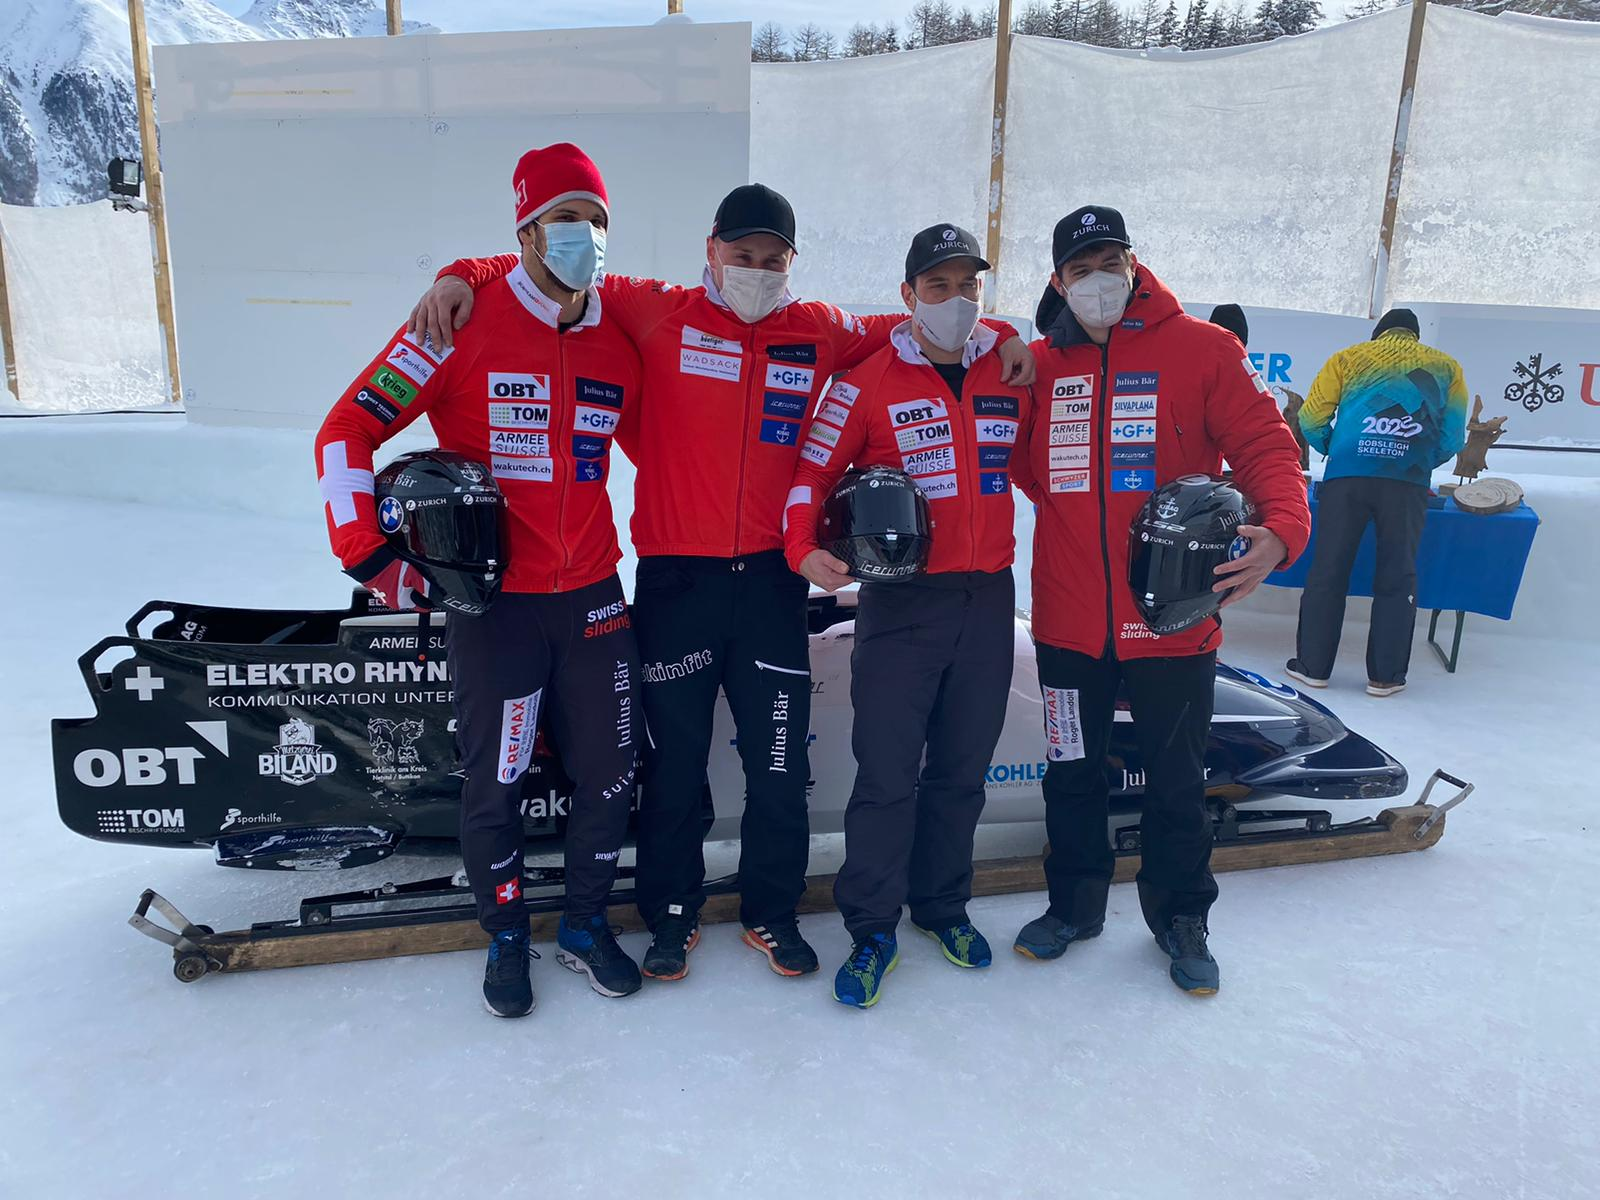 IBSF Junior World Championships 2021 4man Team Vogt 2